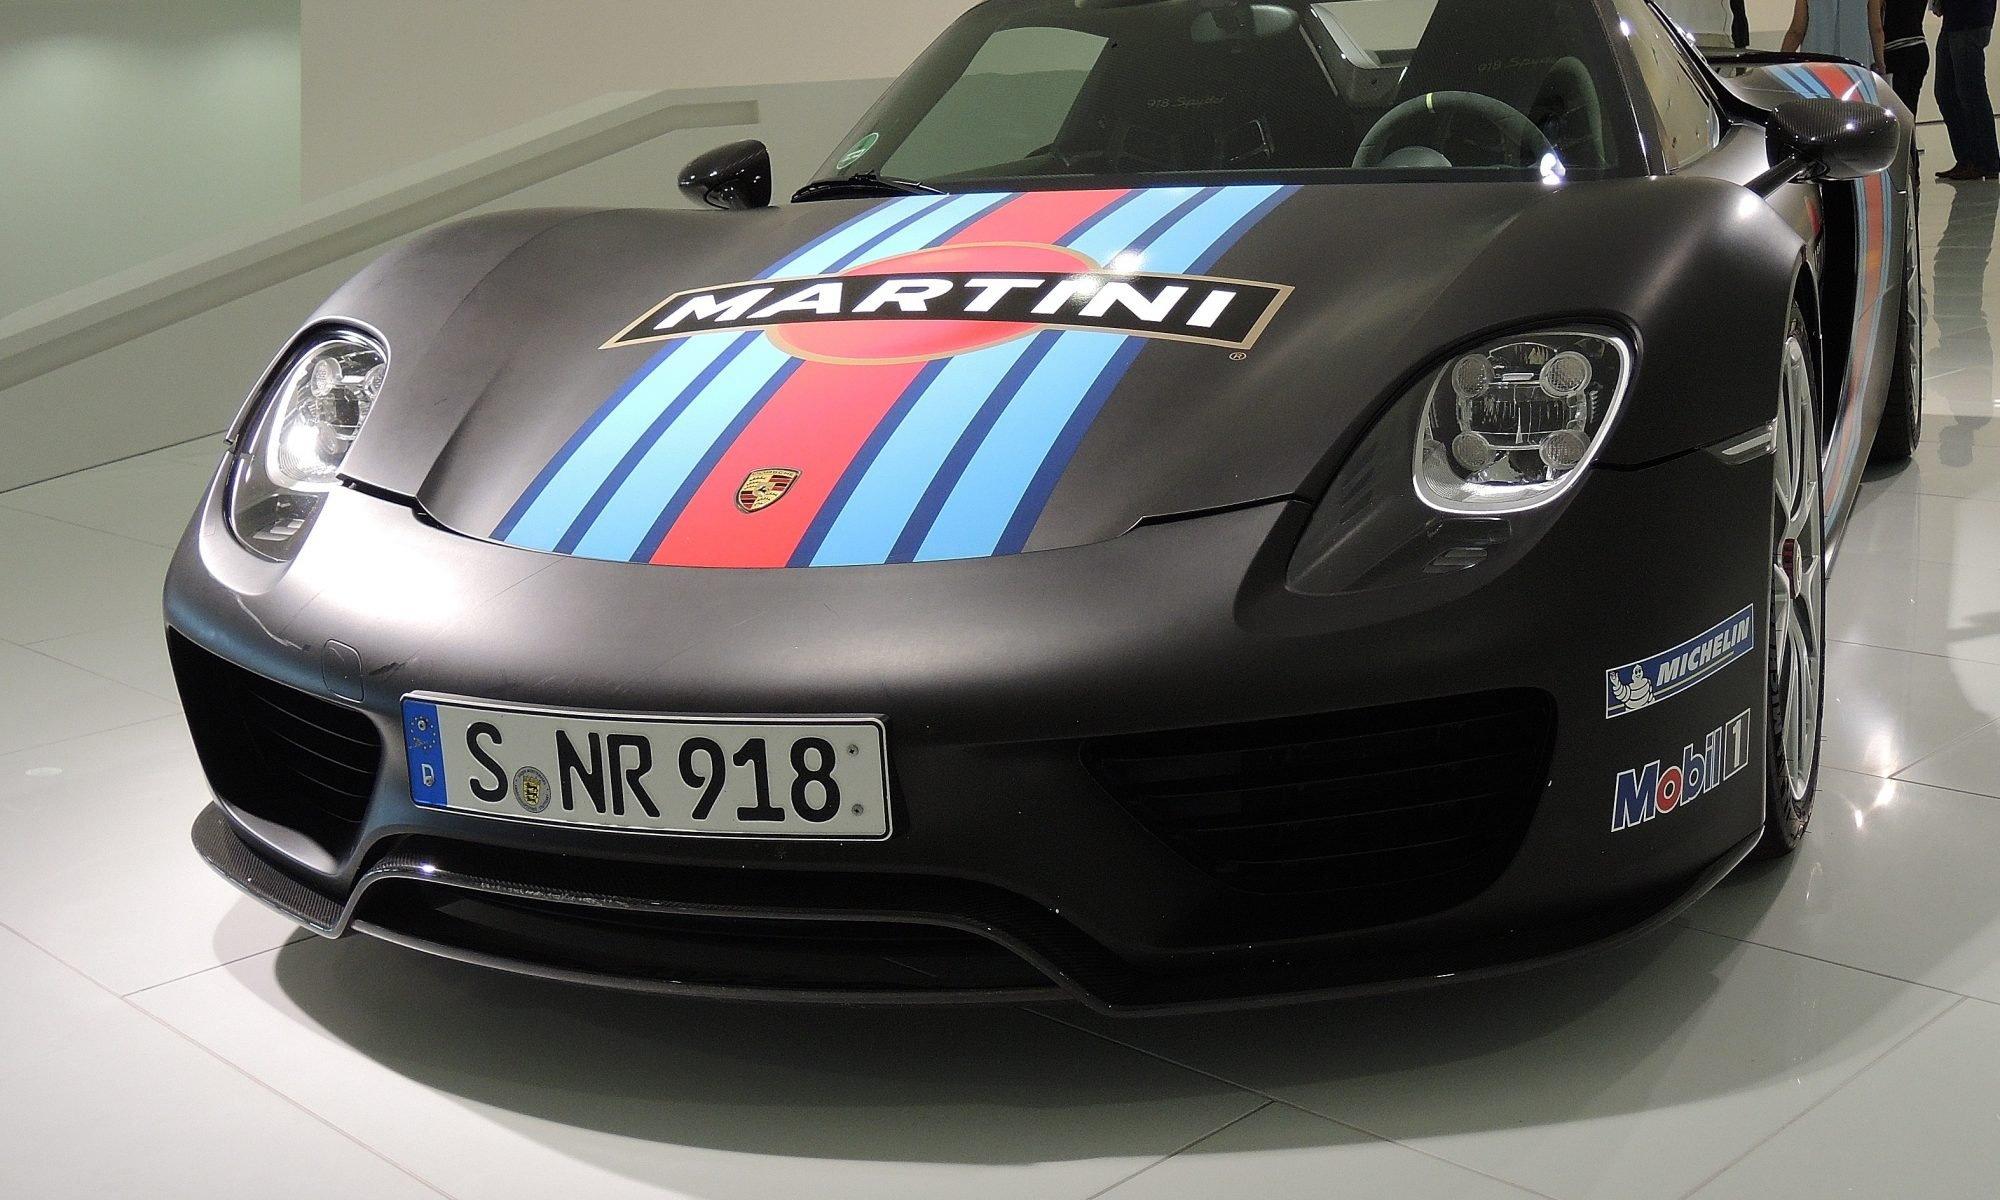 car-vehicle-museum-martini-sports-car-license-plate-972084-pxhere.com